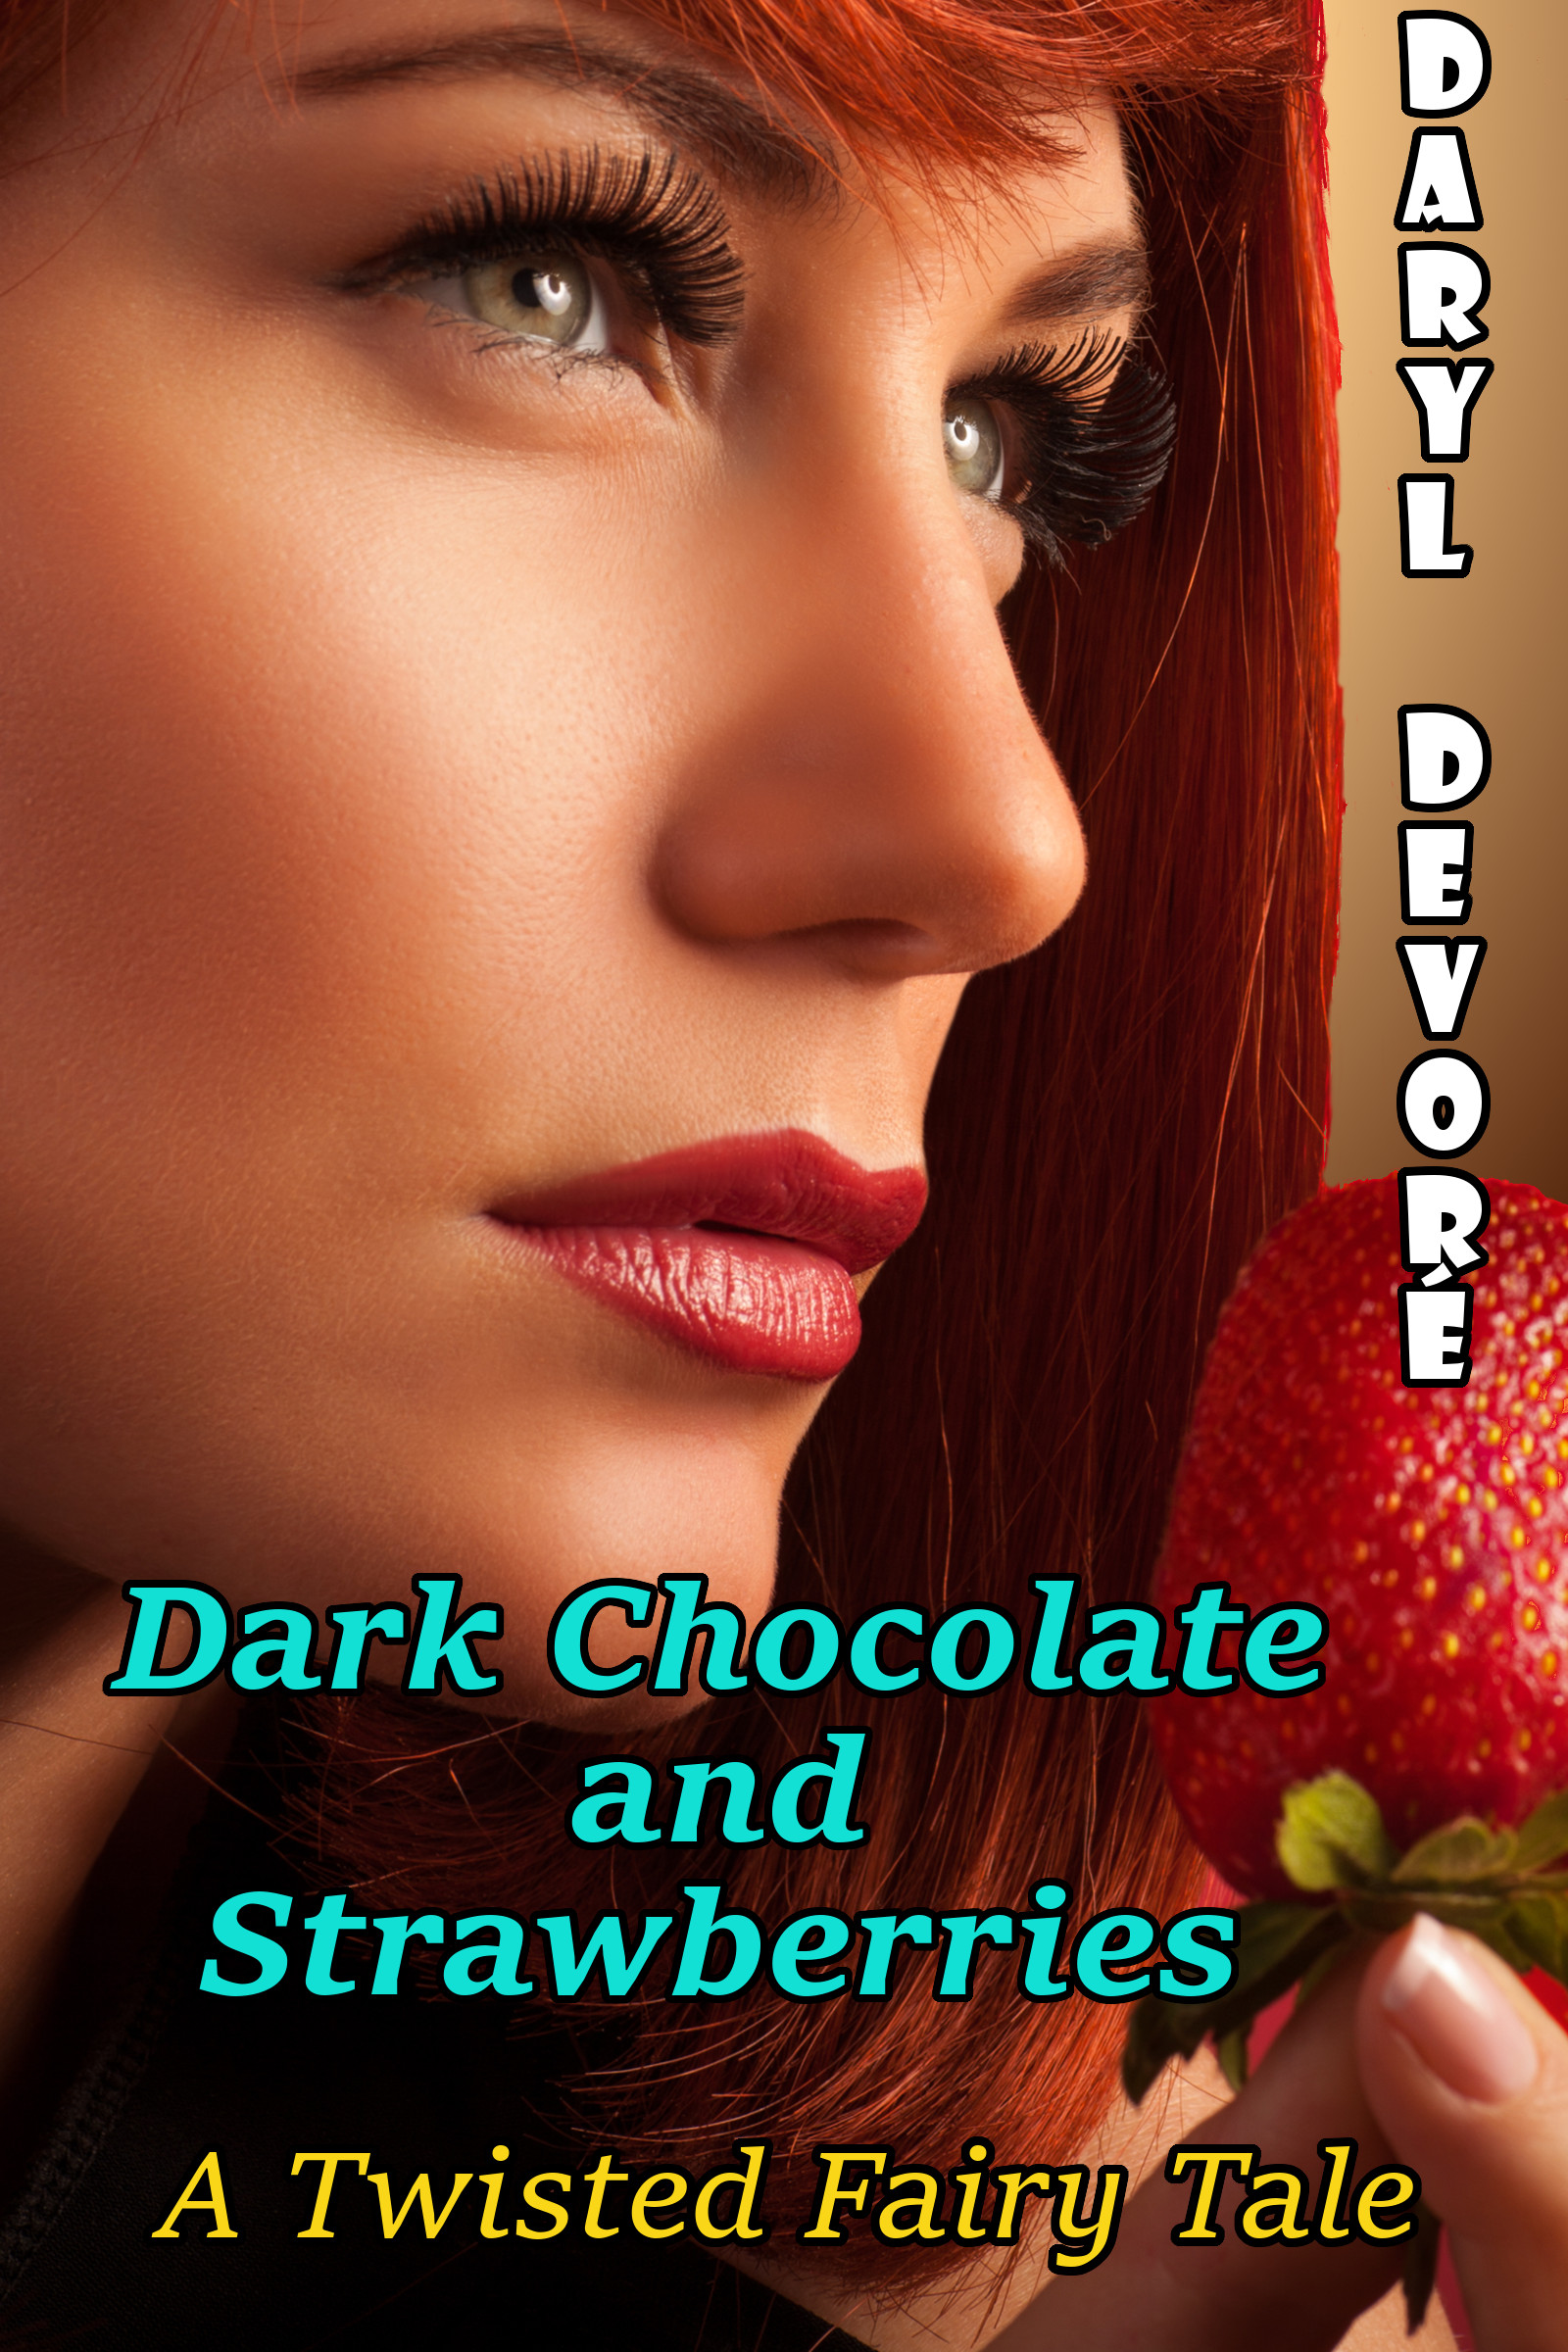 Dark Choicolate and Strawberries - DD cover.jpg